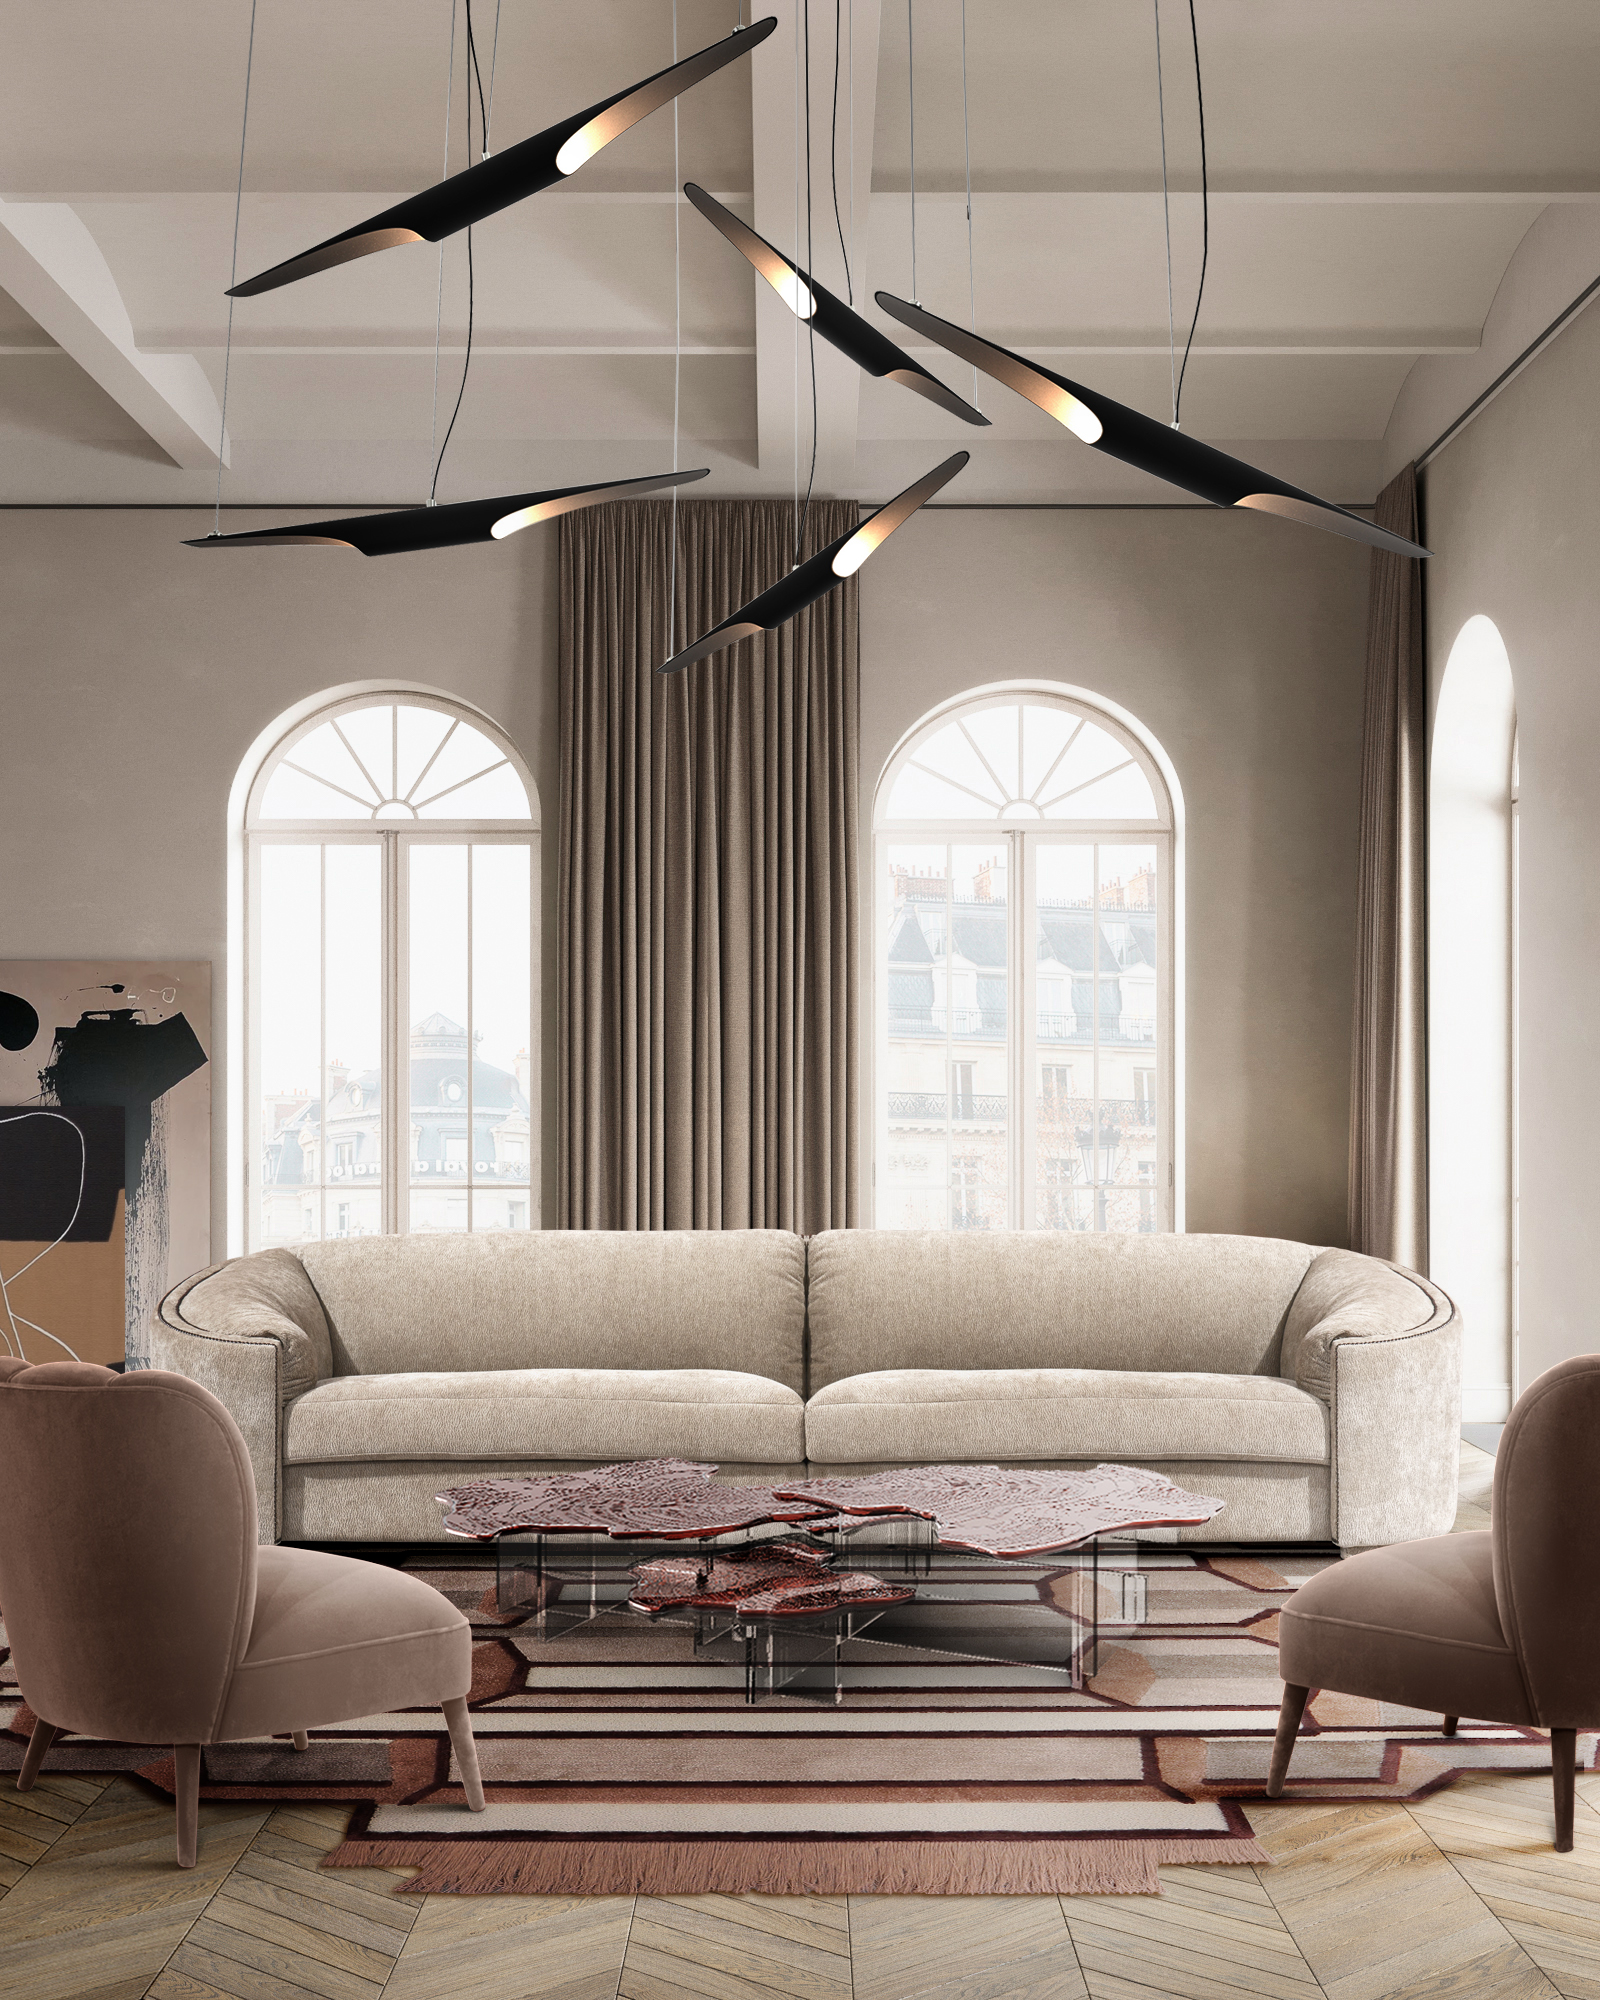 Incredible Sofas for Outstanding Living Rooms incredible sofasIncredible Sofas for Outstanding Living RoomsBB wales XL monet center coltrane Lucy rug